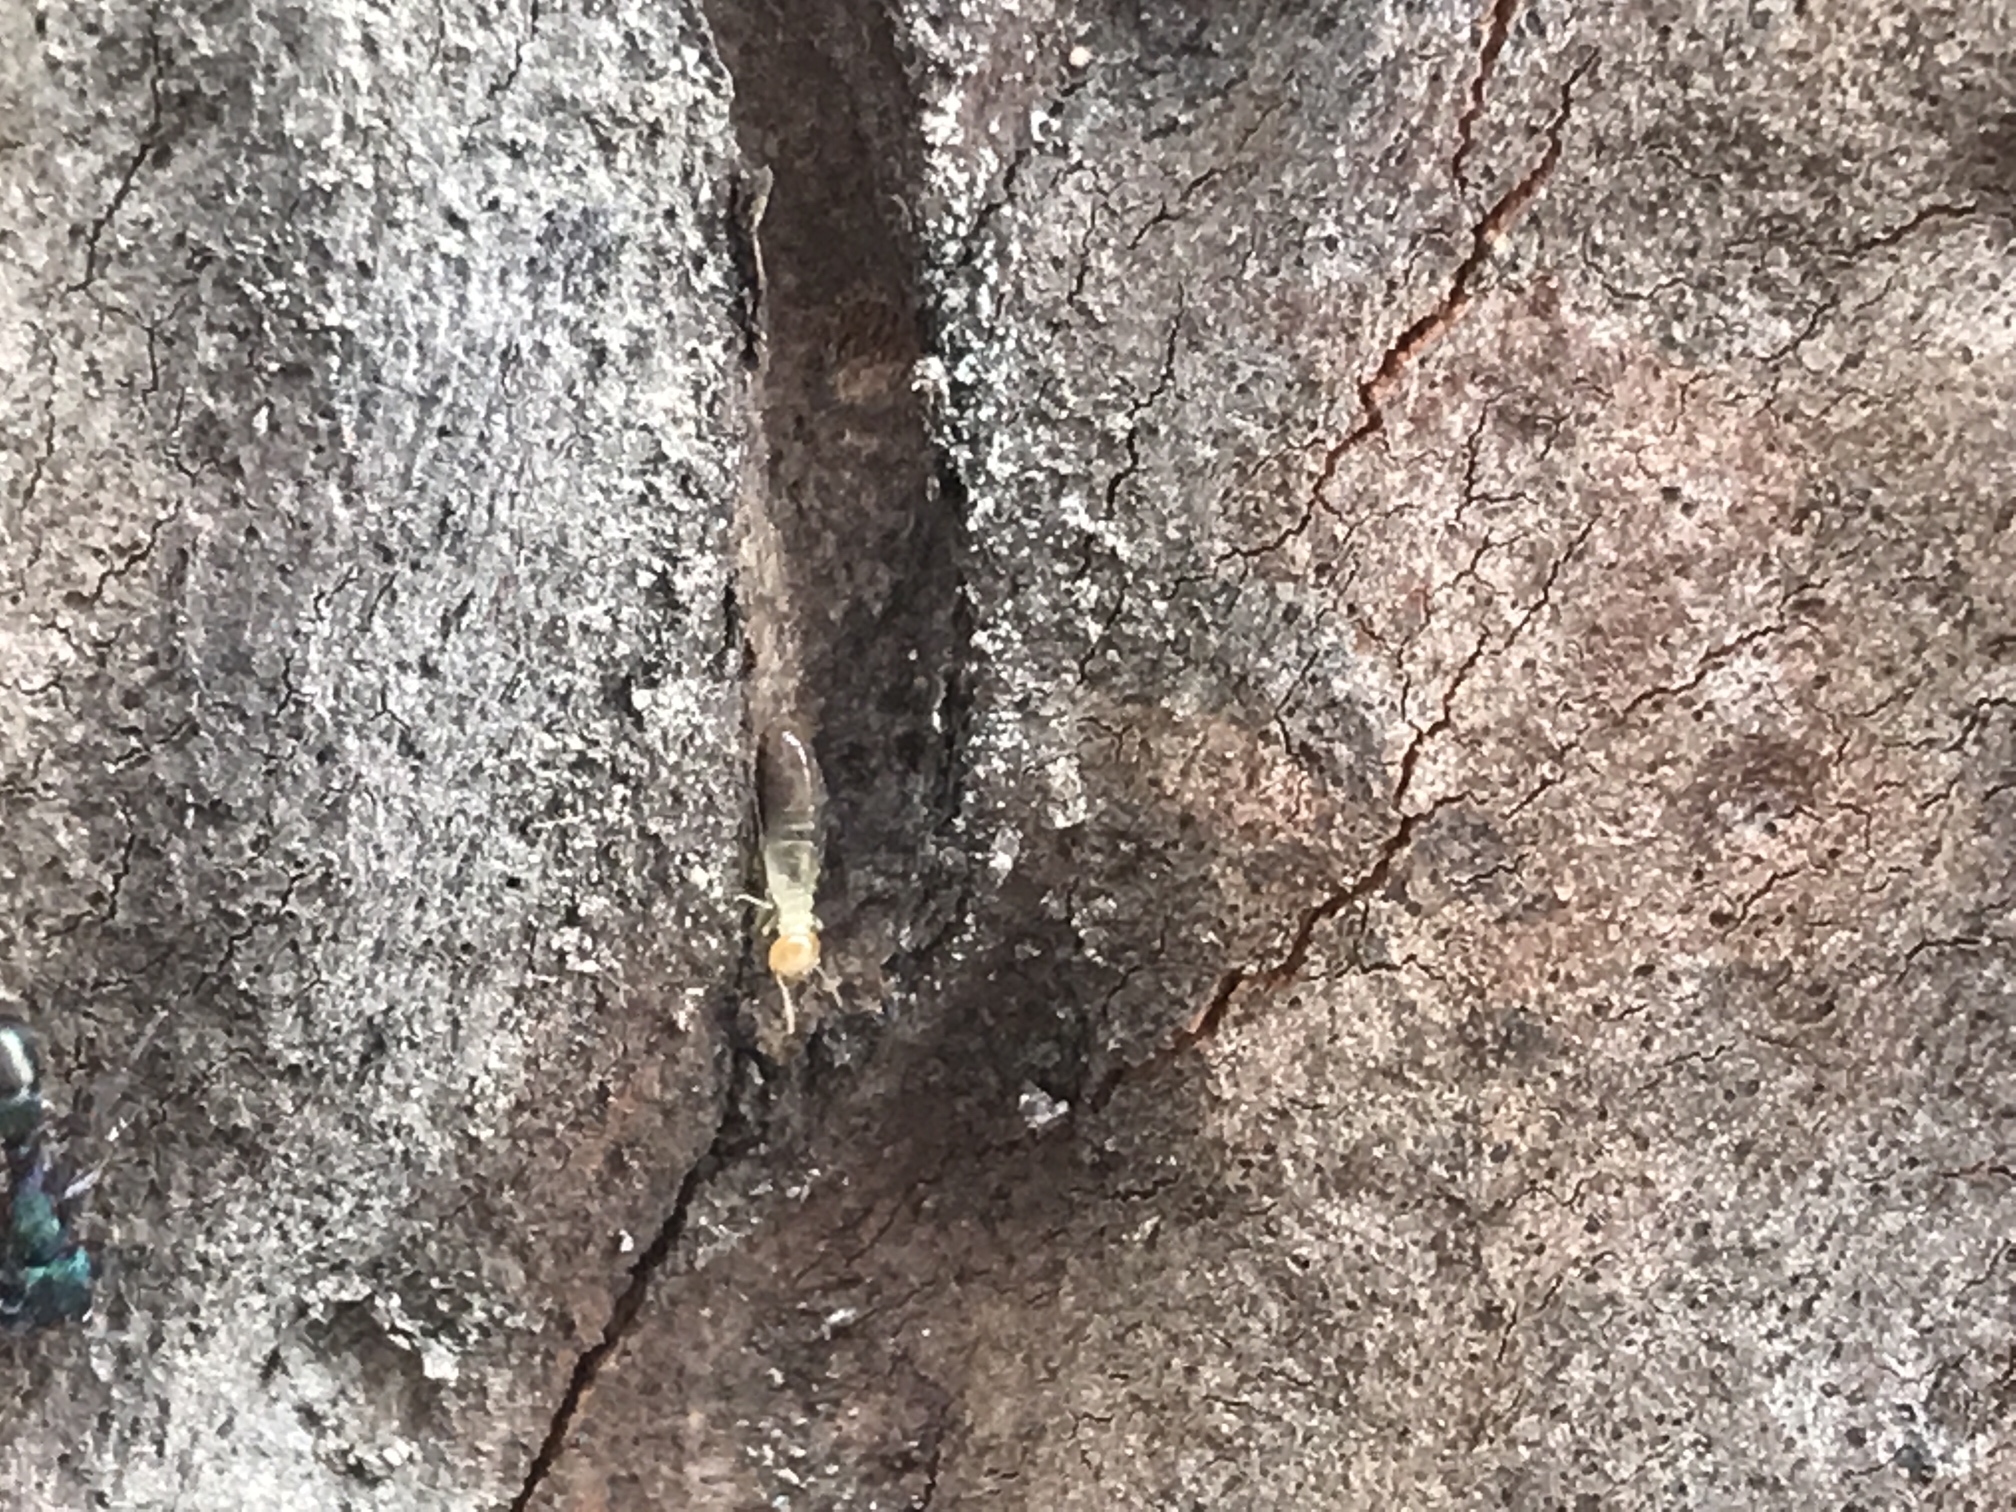 A nasute termite climbing in a crevice on a tree is a common discovery during pest control Narangba